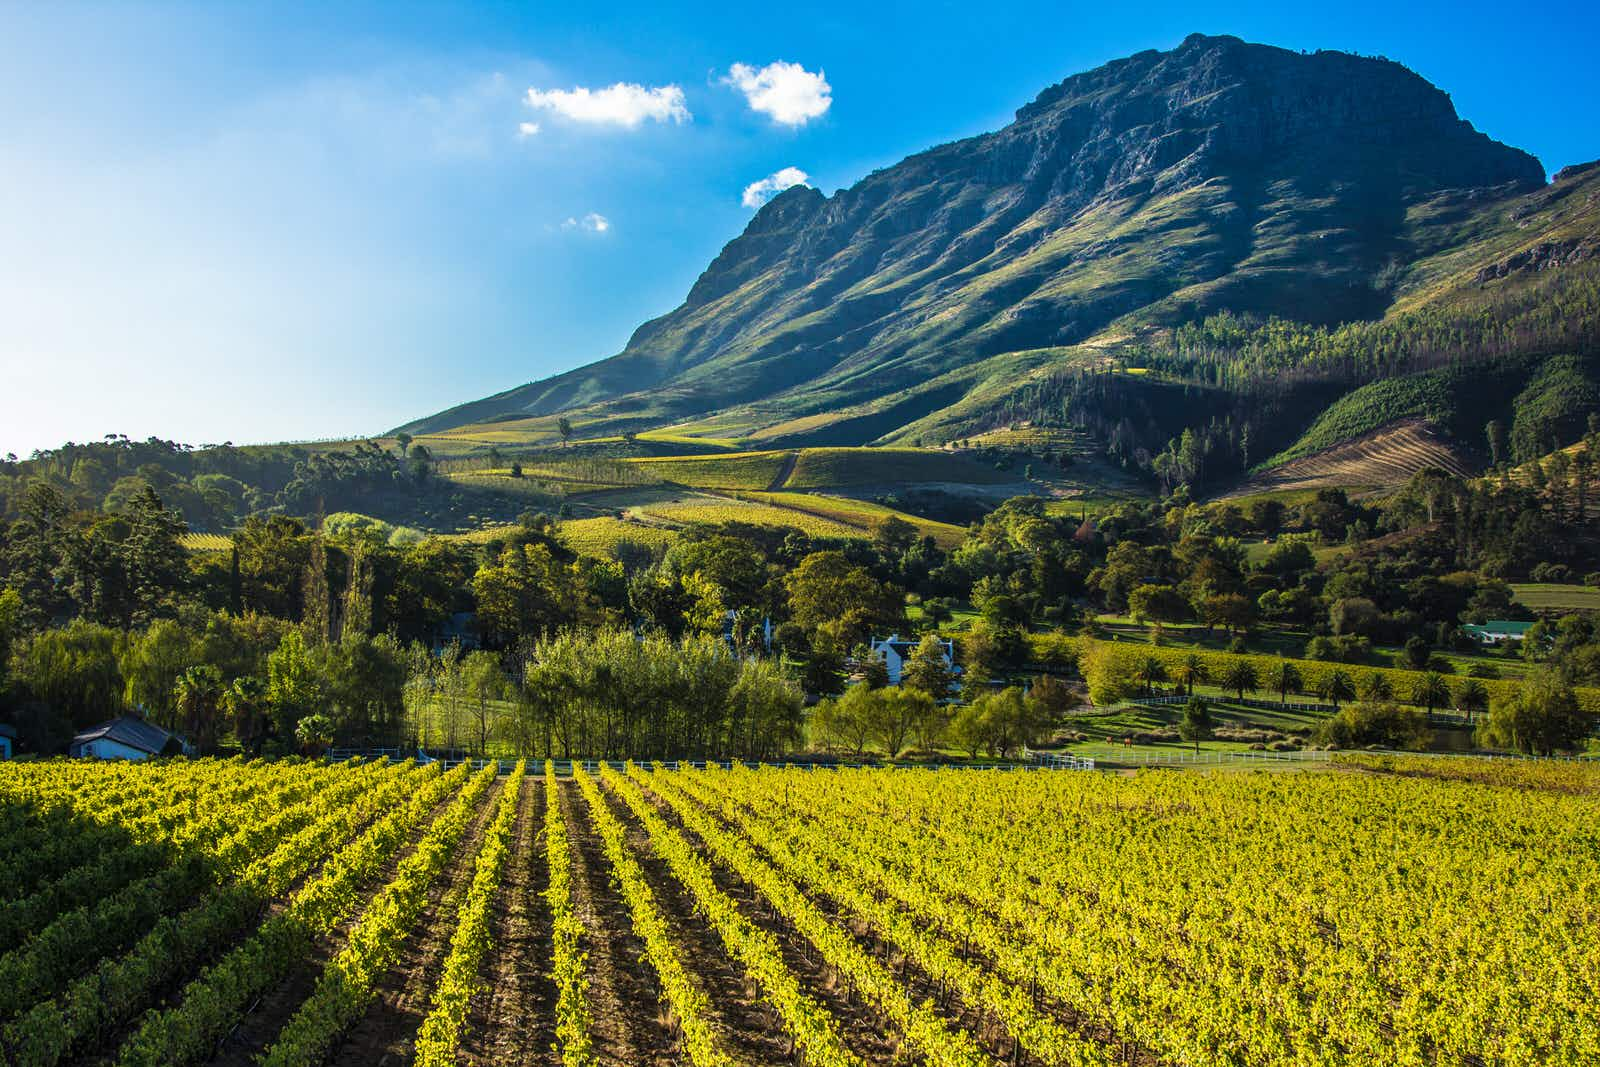 The slopes at the base of the mountains around Stellenbosch are home to no less than 100 wineries © James Penry / Getty Images